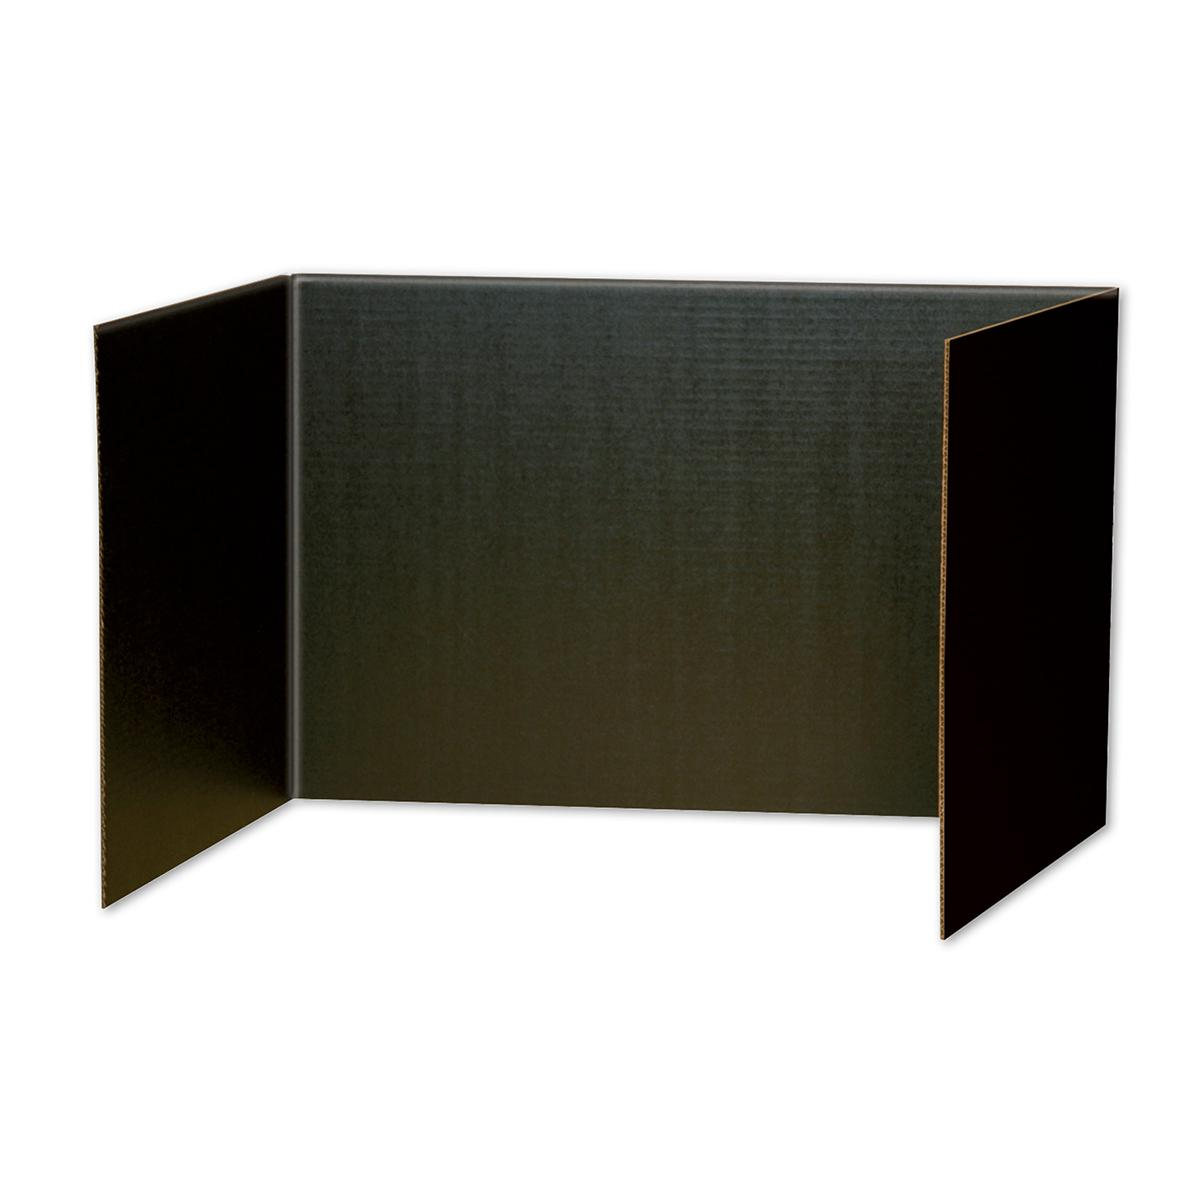 Privacy Boards 4-Pack (Black)